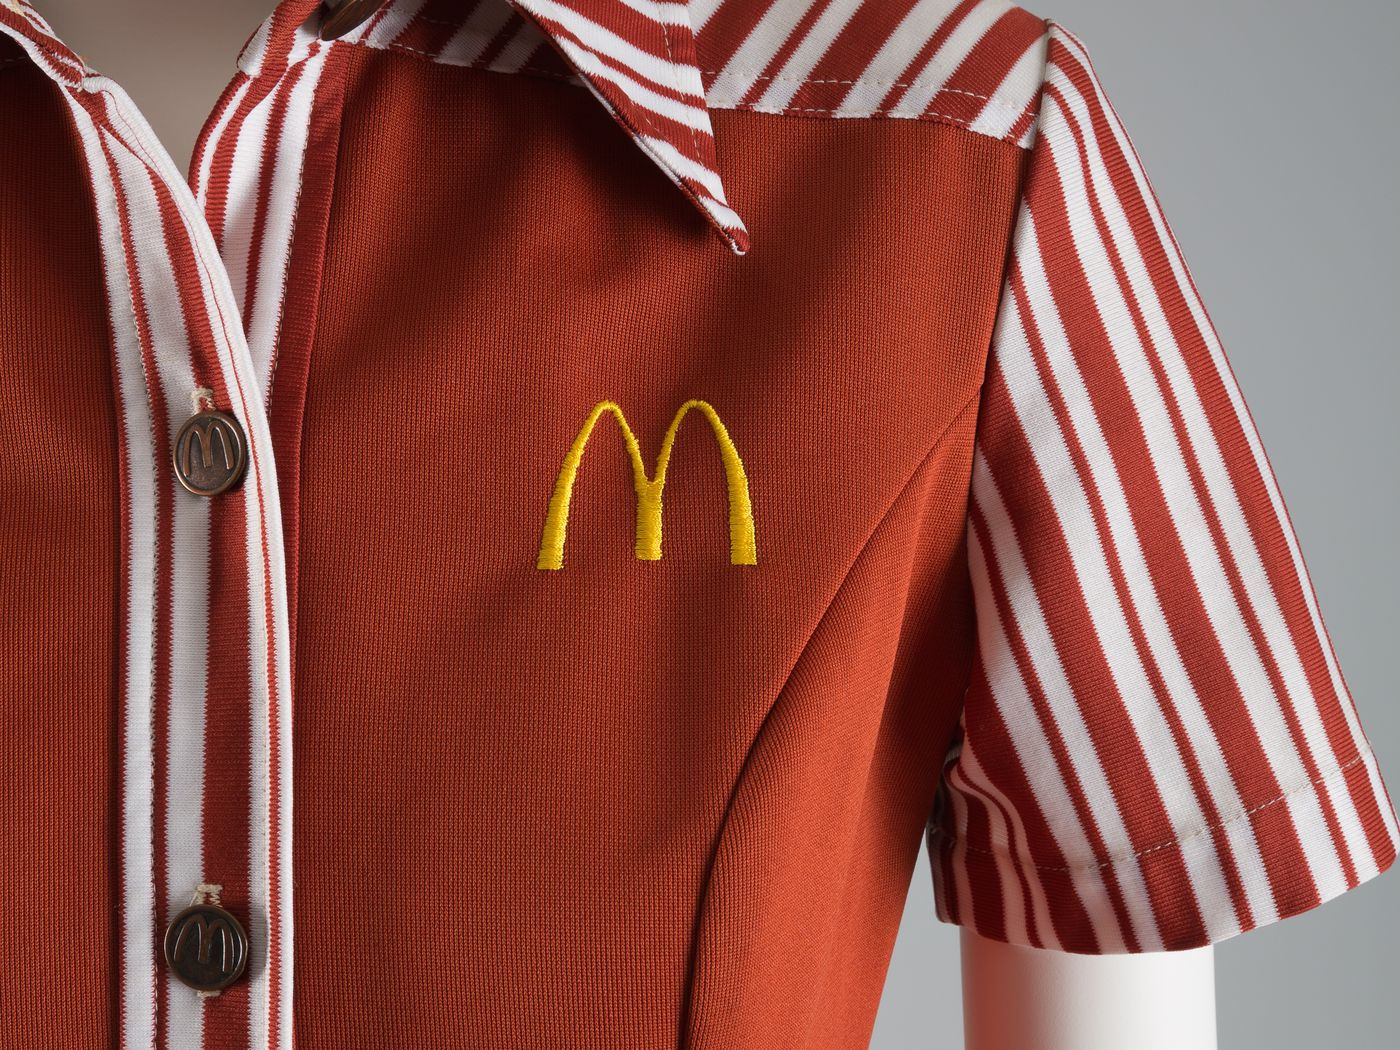 Mcdonald S Uniforms From 1950 To 2017 Eater